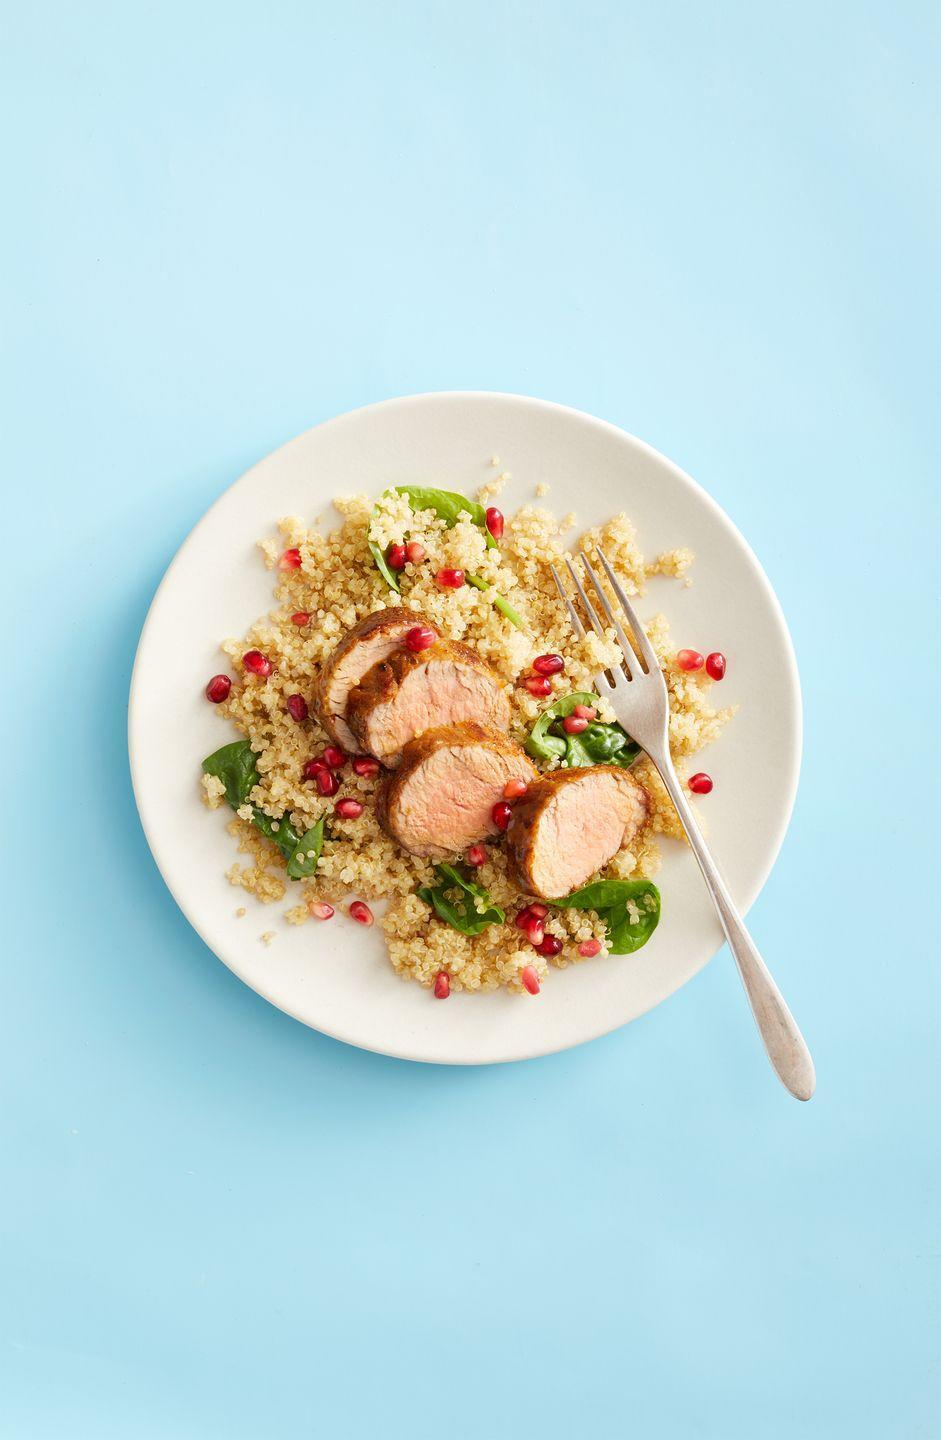 """<p>Pork tenderloin served atop a bed of potatoes may feel too heavy (and bland!) — which is why quinoa is a delightful swap here. Pepper your pilaf with pomegranate seeds for an unexpected touch of texture.</p><p><a href=""""https://www.goodhousekeeping.com/food-recipes/a30392190/pork-tenderloin-with-quinoa-pilaf-recipe/"""" rel=""""nofollow noopener"""" target=""""_blank"""" data-ylk=""""slk:Get the recipe for Pork Tenderloin With Quinoa Pilaf »"""" class=""""link rapid-noclick-resp""""><em>Get the recipe for Pork Tenderloin With Quinoa Pilaf »</em></a></p>"""